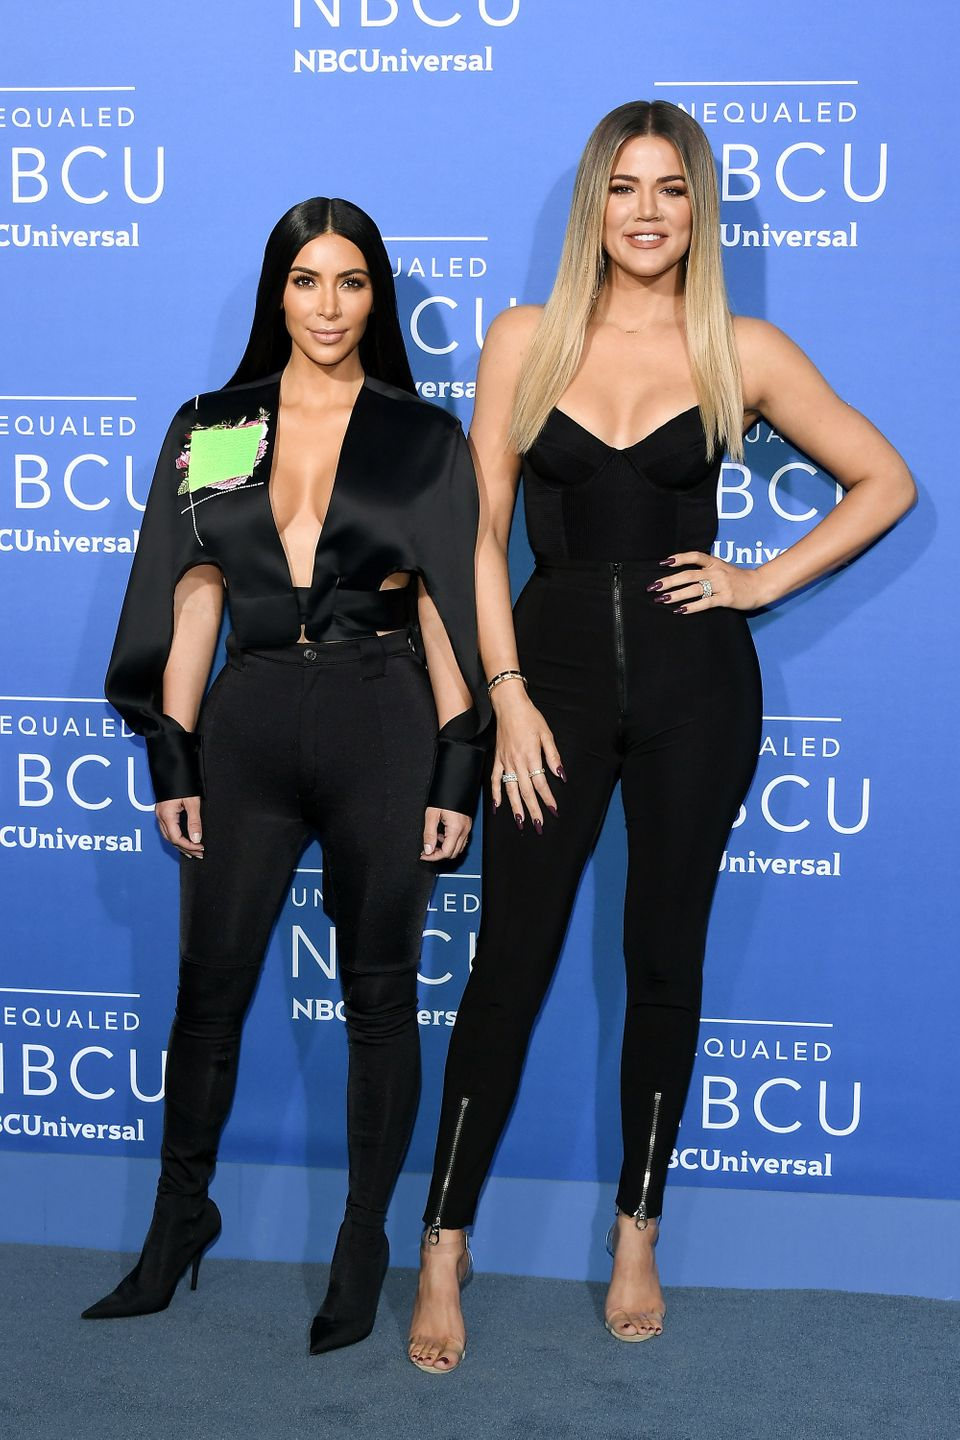 NEW YORK, NY - MAY 15:  Kim Kardashian West (L) and Khloe Kardashian attend the 2017 NBCUniversal Upfront at Radio City Music